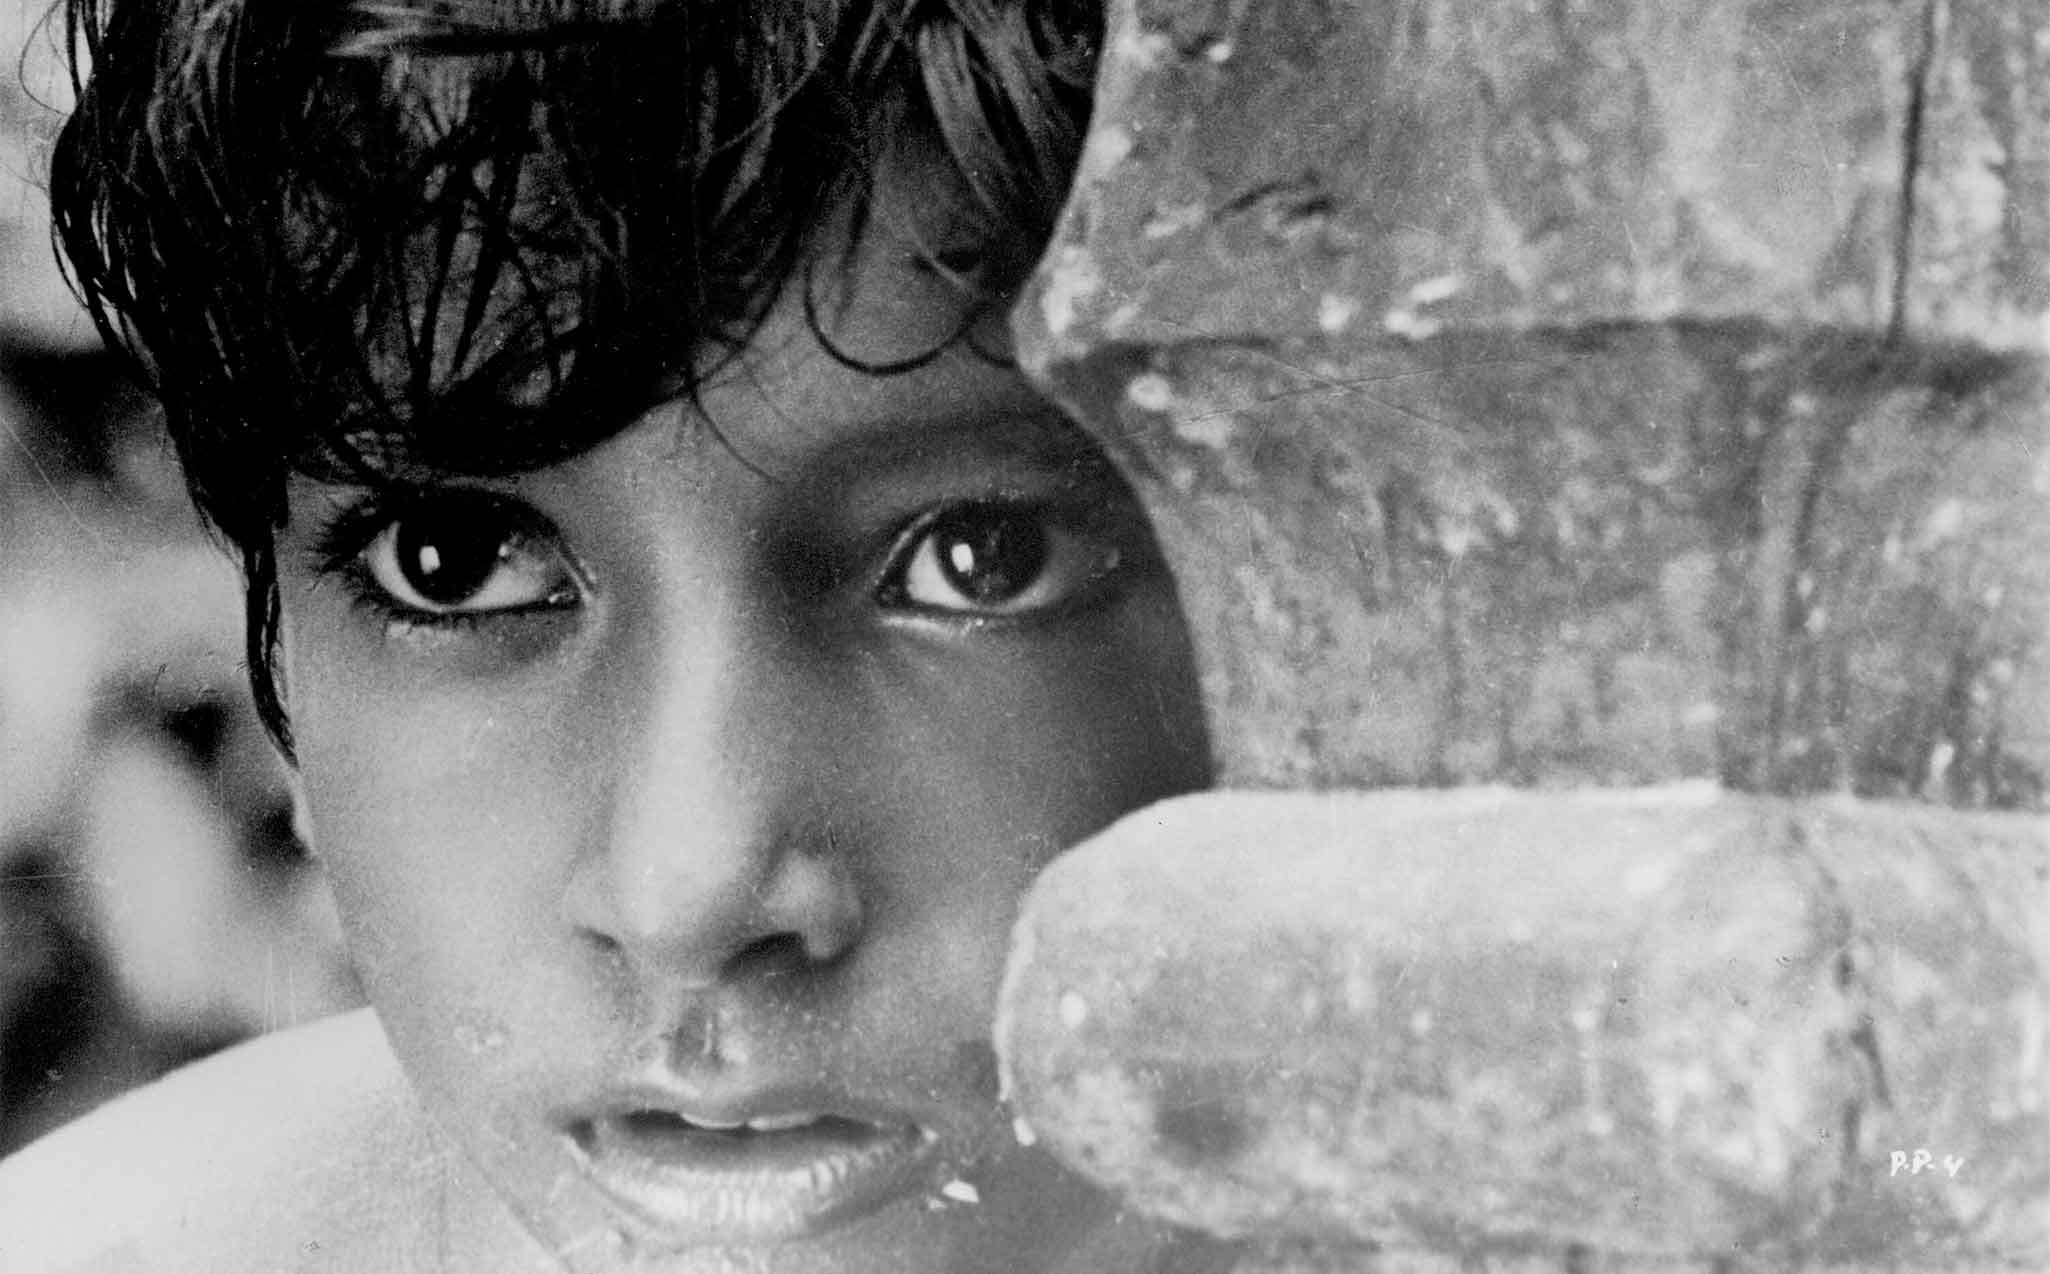 Pather Panchali (1955 India)Directed by Satyajit RayShown: Subir Bannerjee